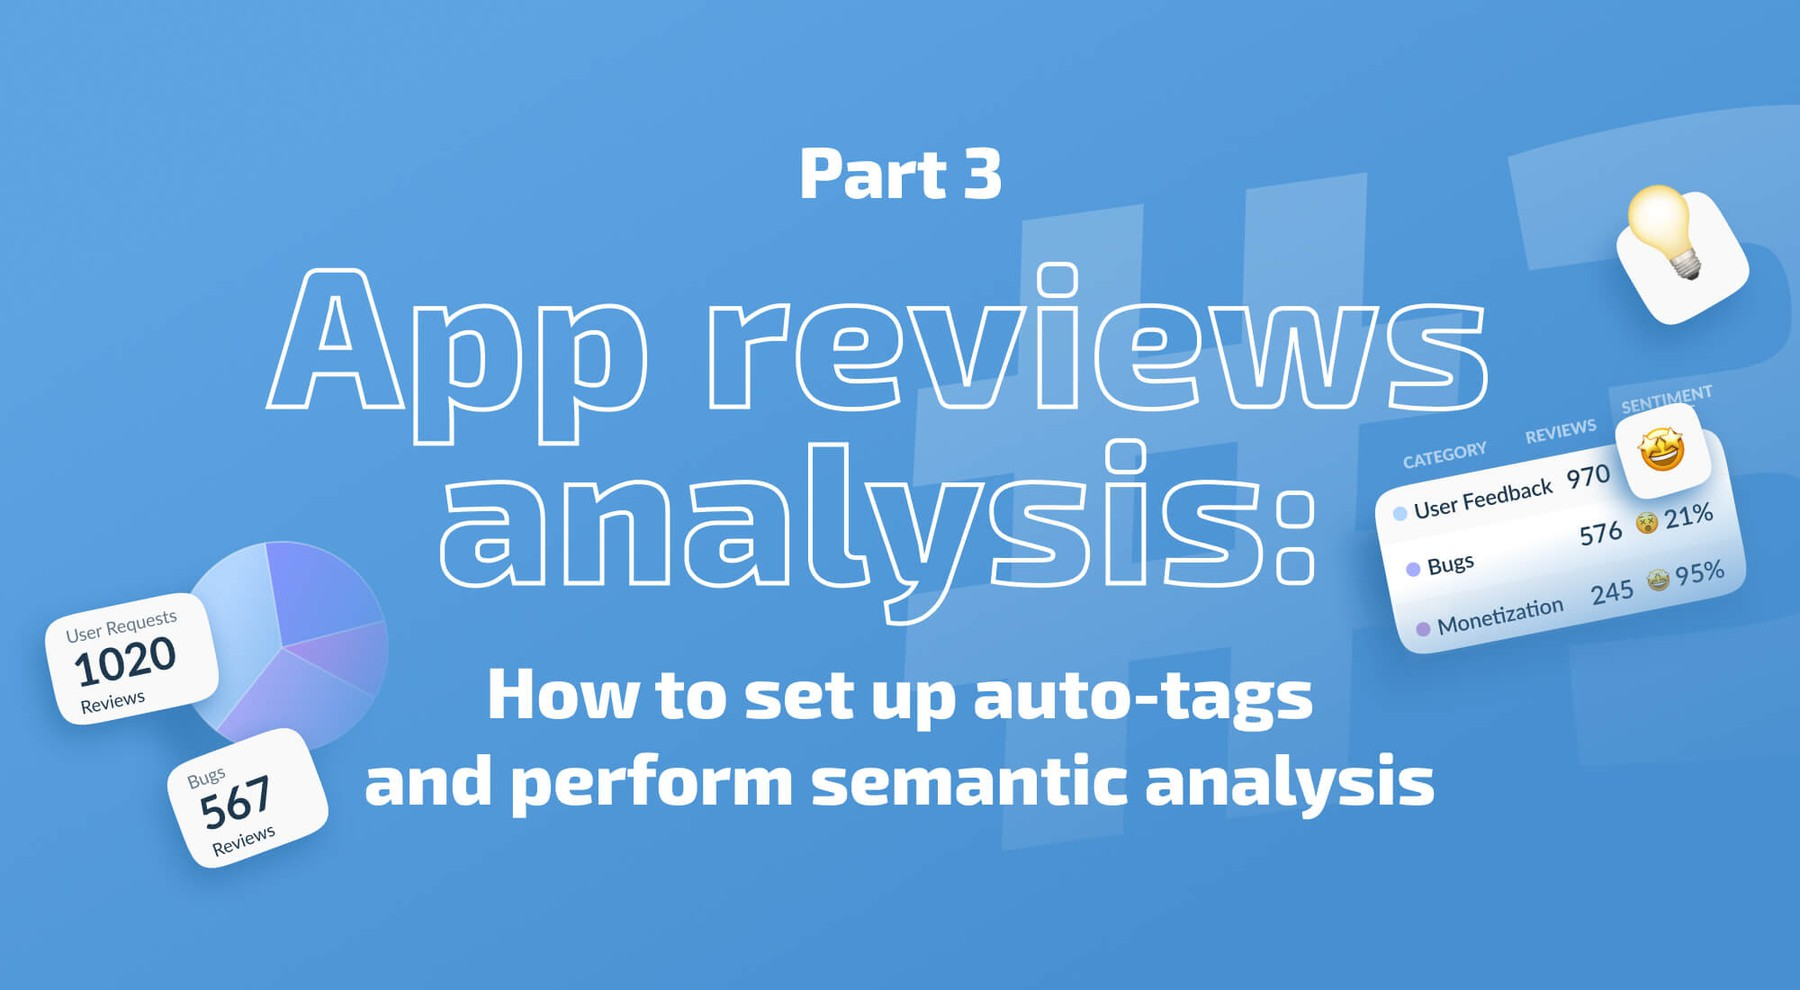 App reviews analysis: How to set up auto-tags and perform semantic analysis